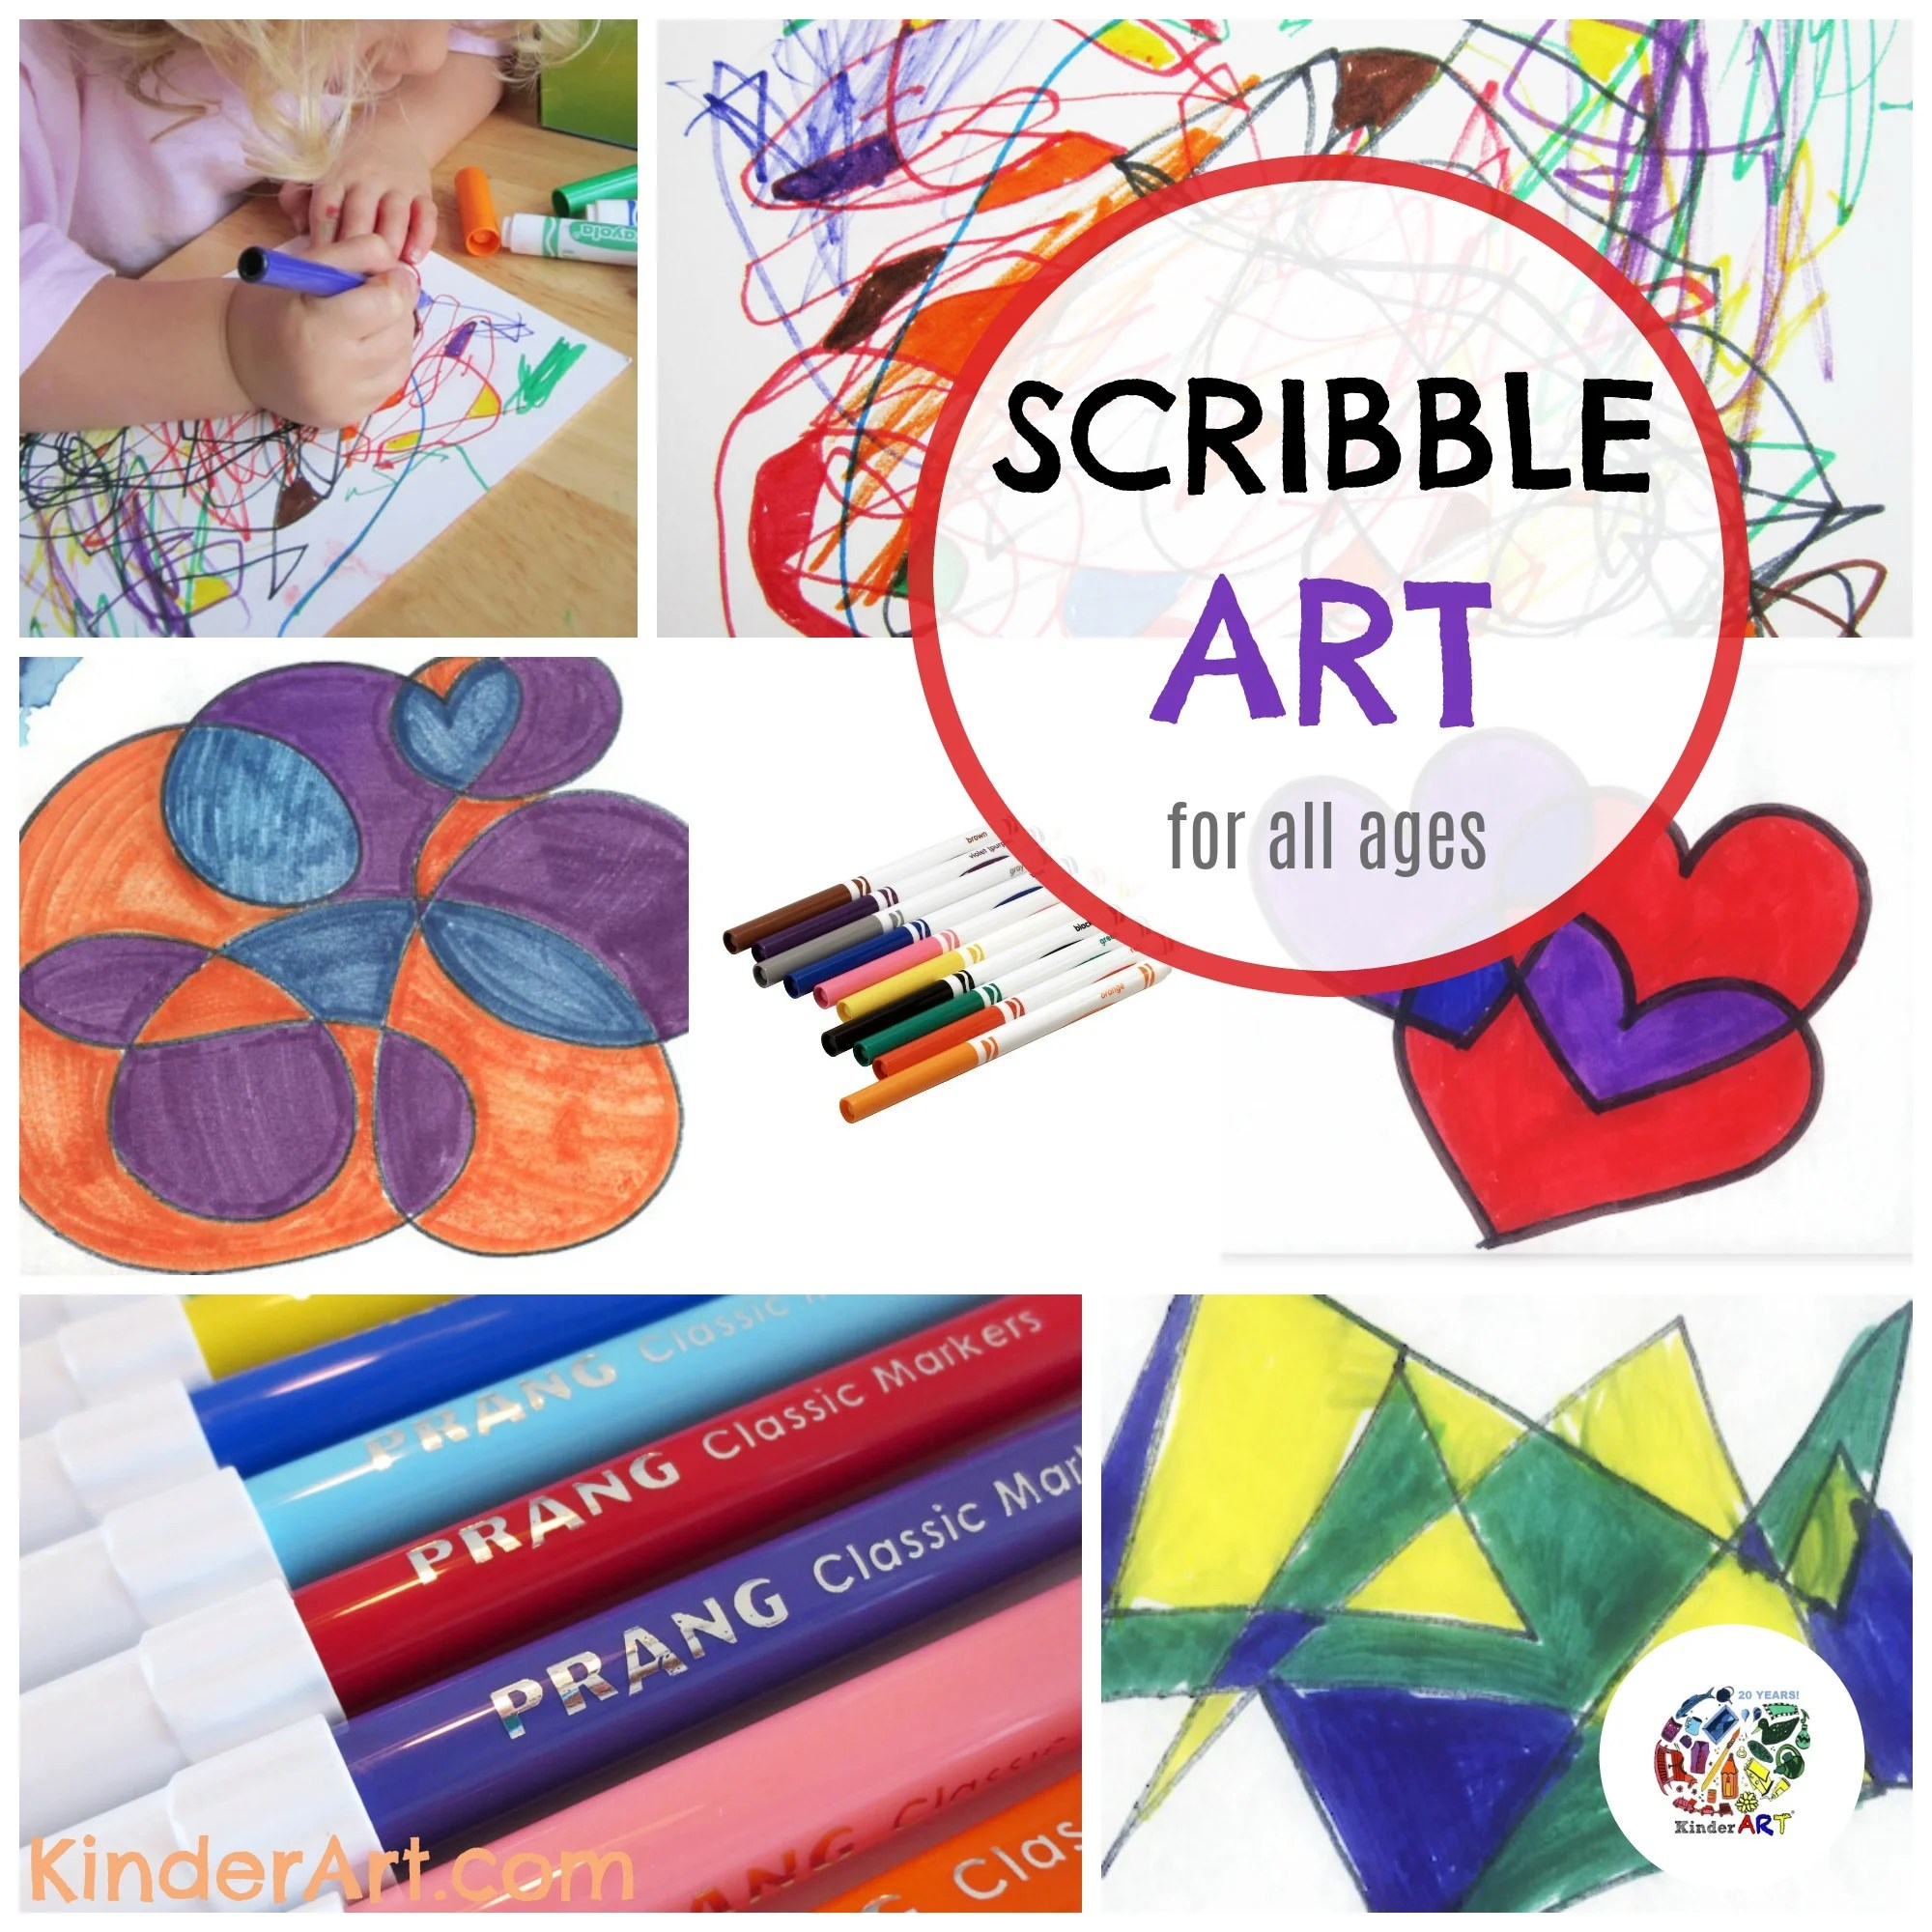 hight resolution of Middle school art lesson plans. Grades 6-8 (ages 11-14 years).